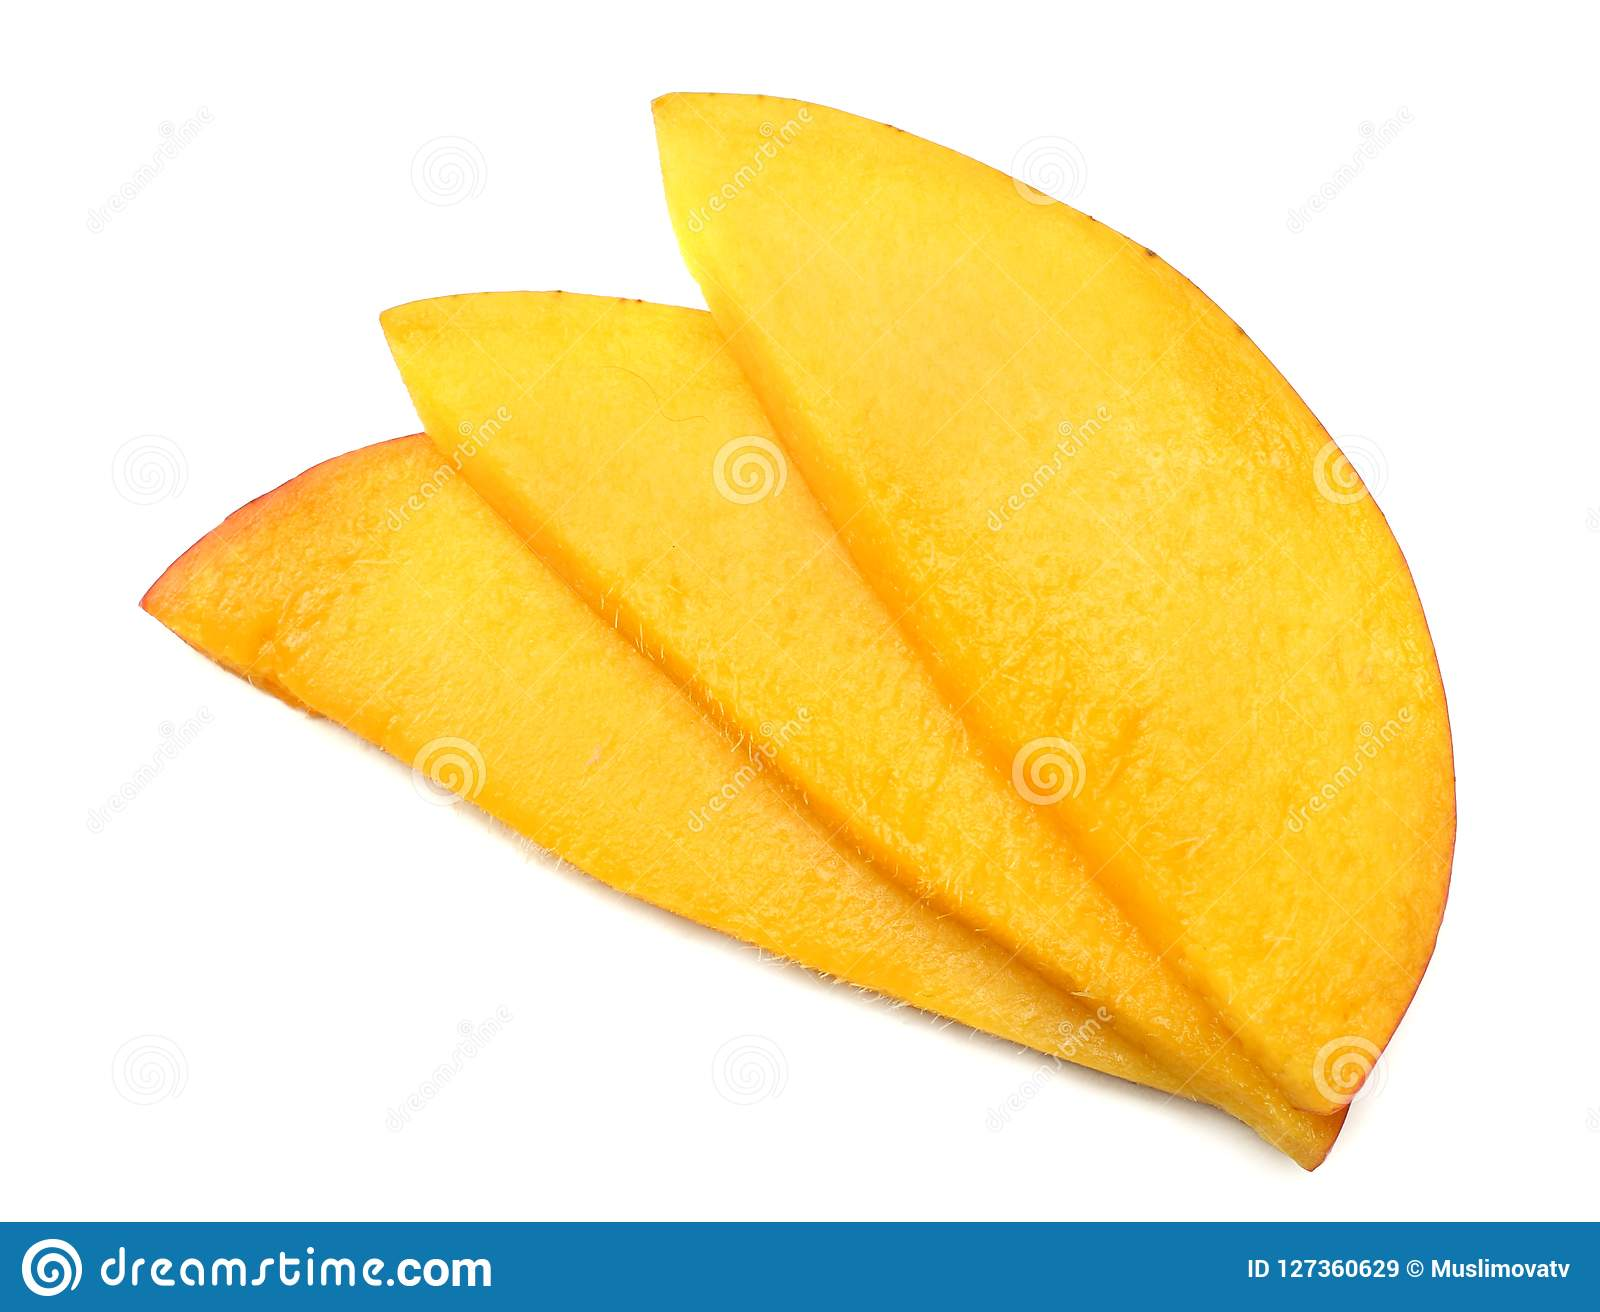 mango slice isolated on white background. healthy food. top view